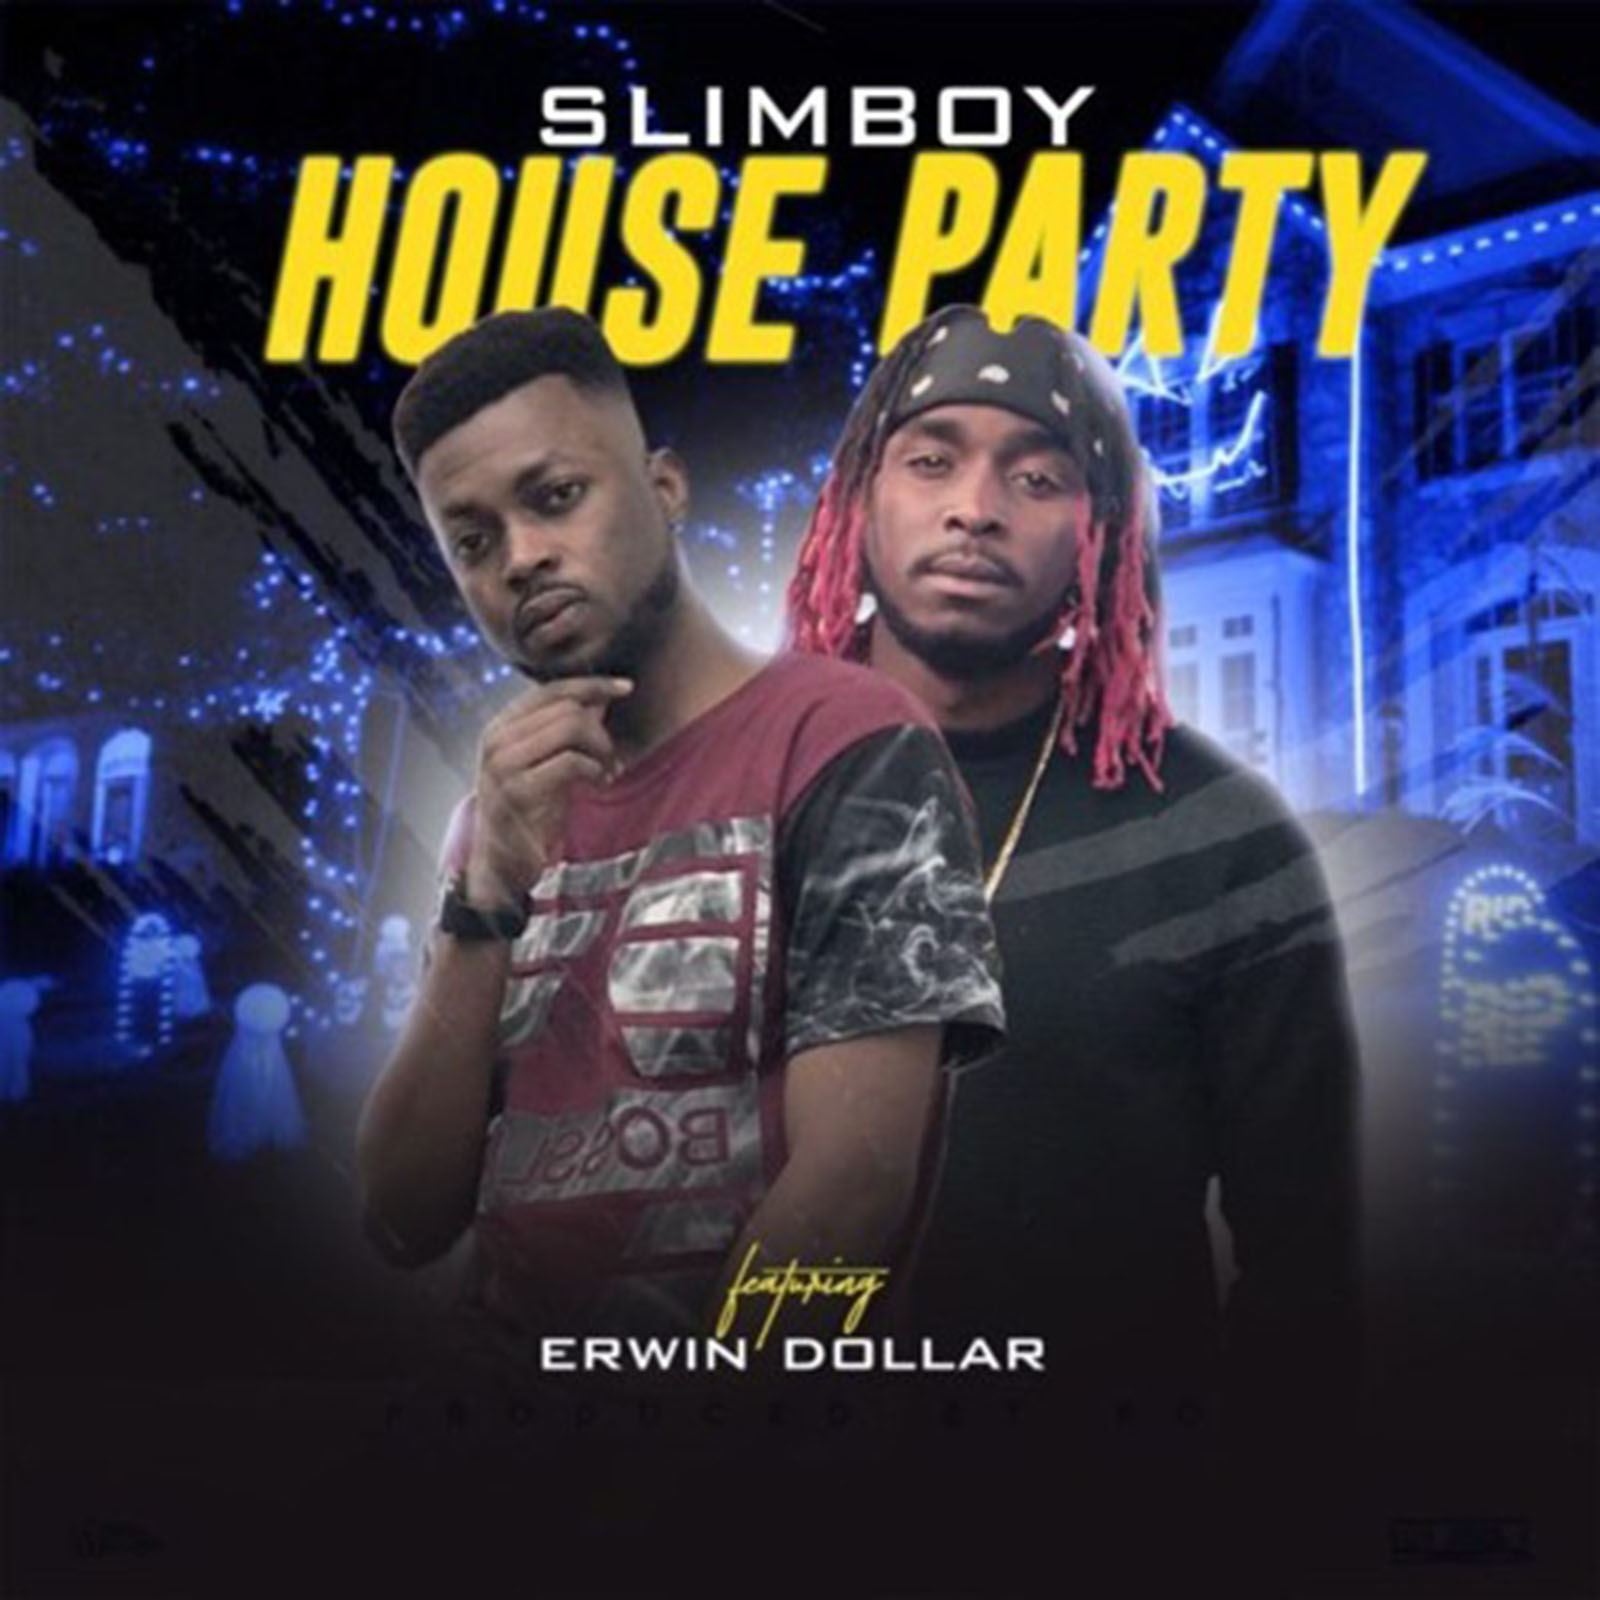 House Party by Slimboy feat. Erwin Dollar